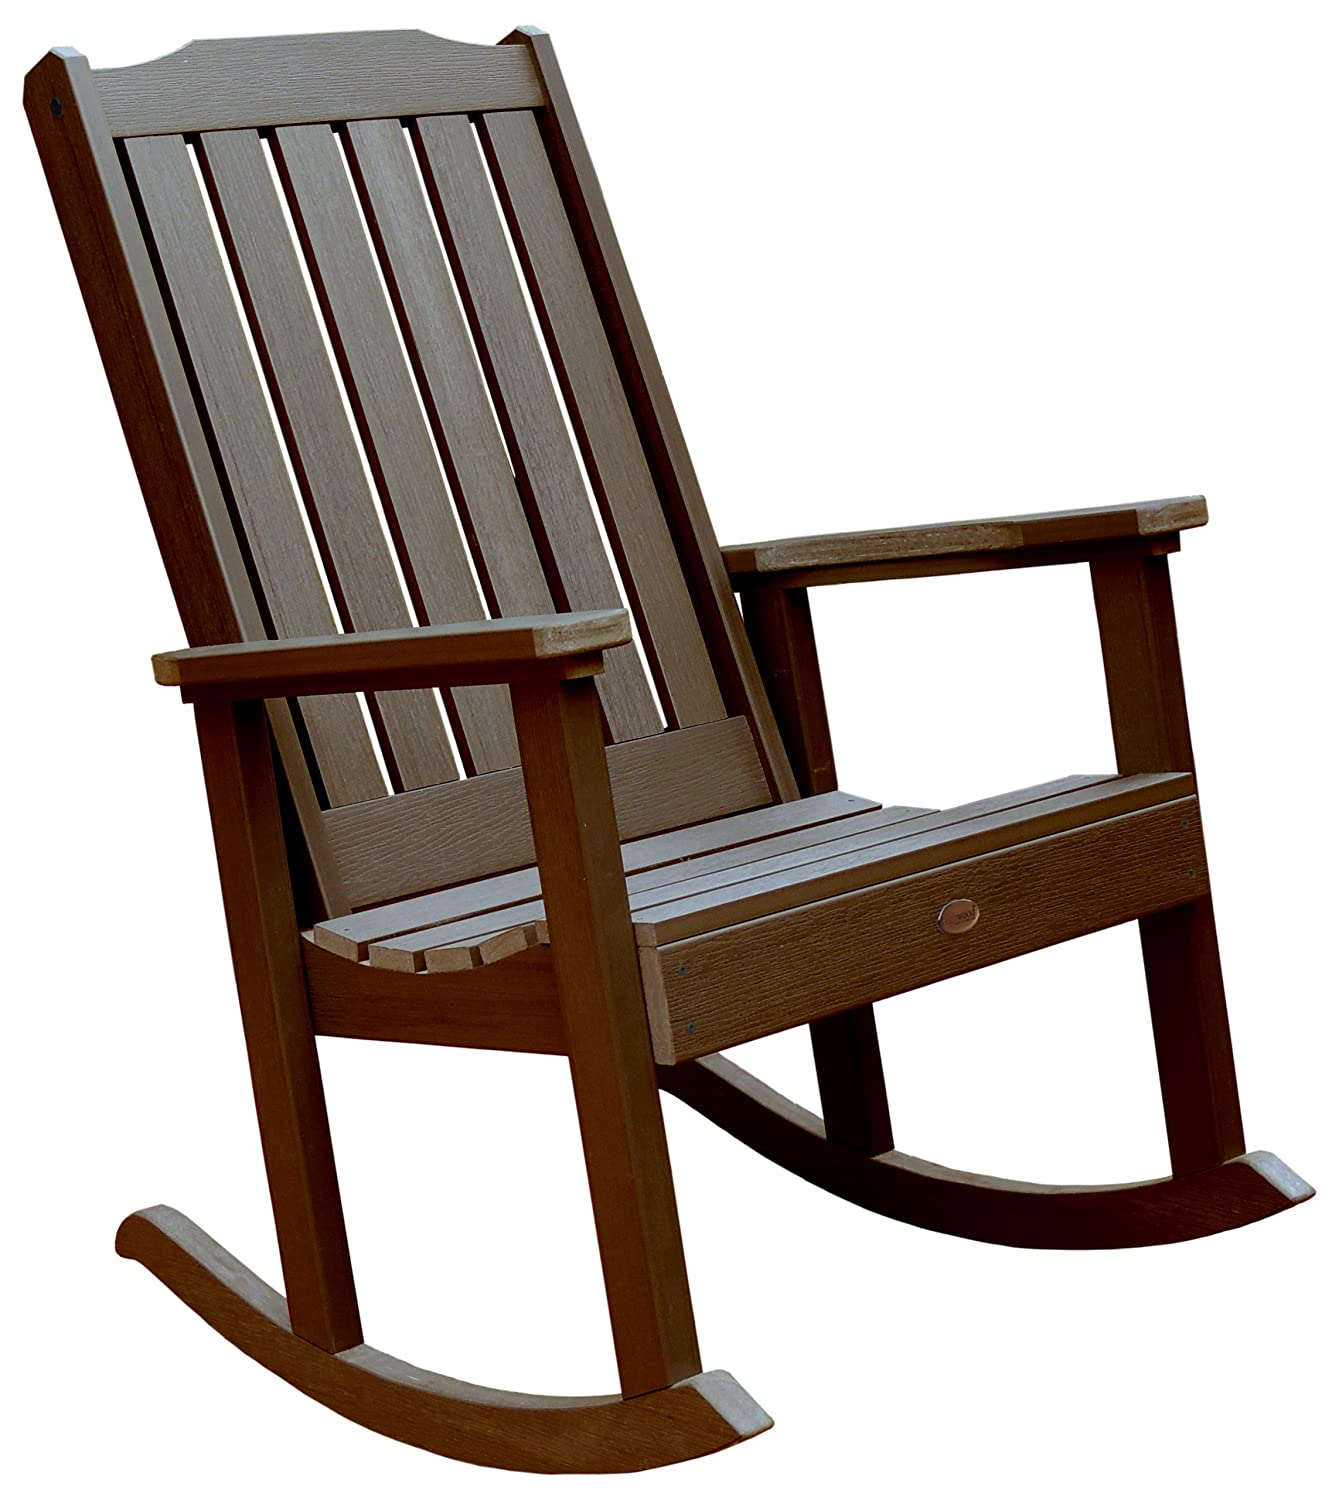 Outdoor Rocking Chairs For Heavy People For Big And Heavy People